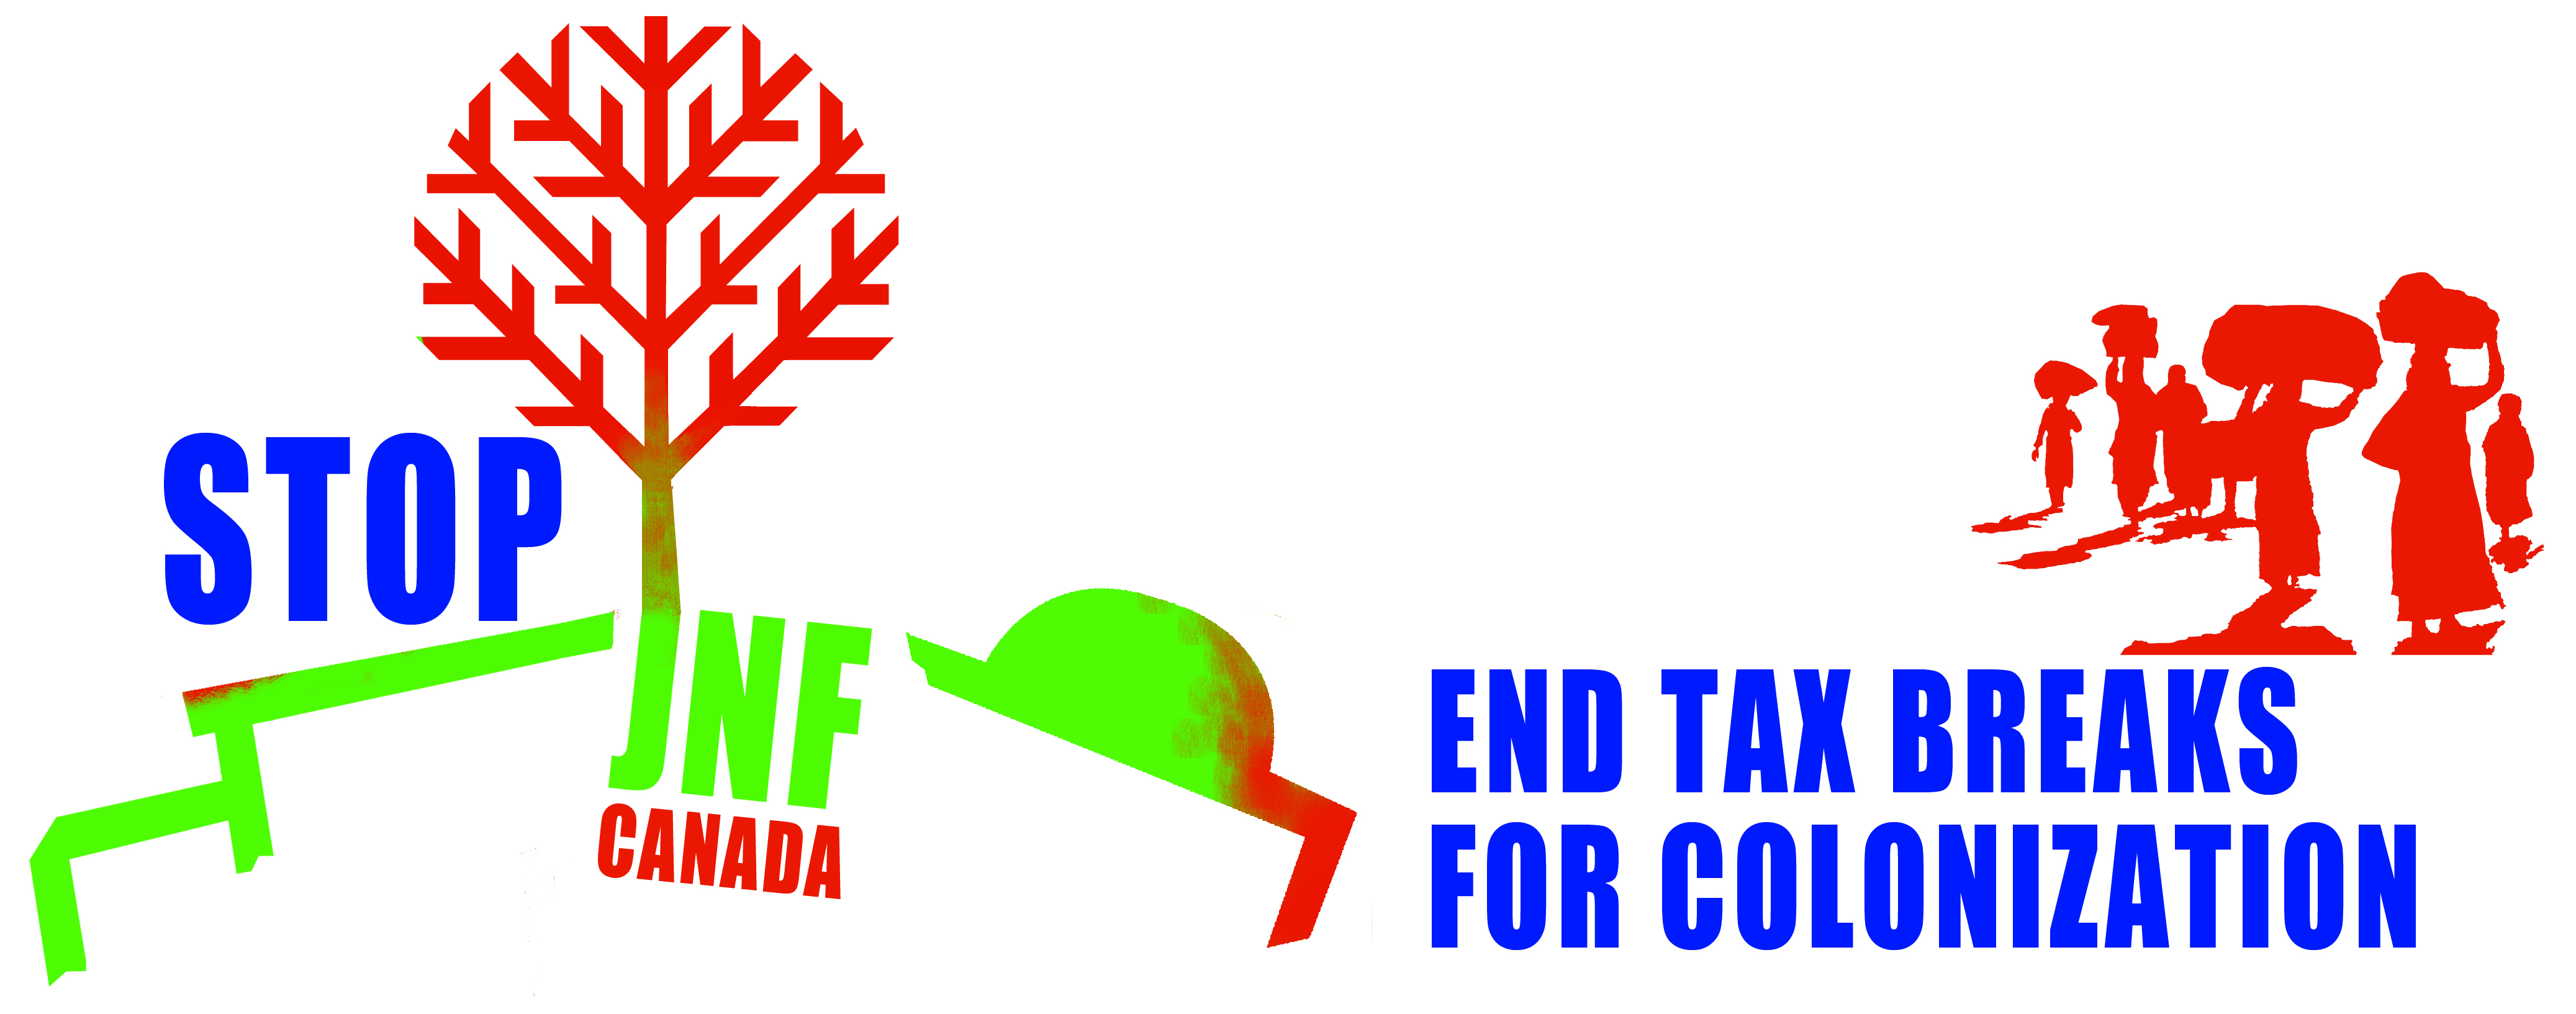 Stop-jnf-canada-banner-no-colonization